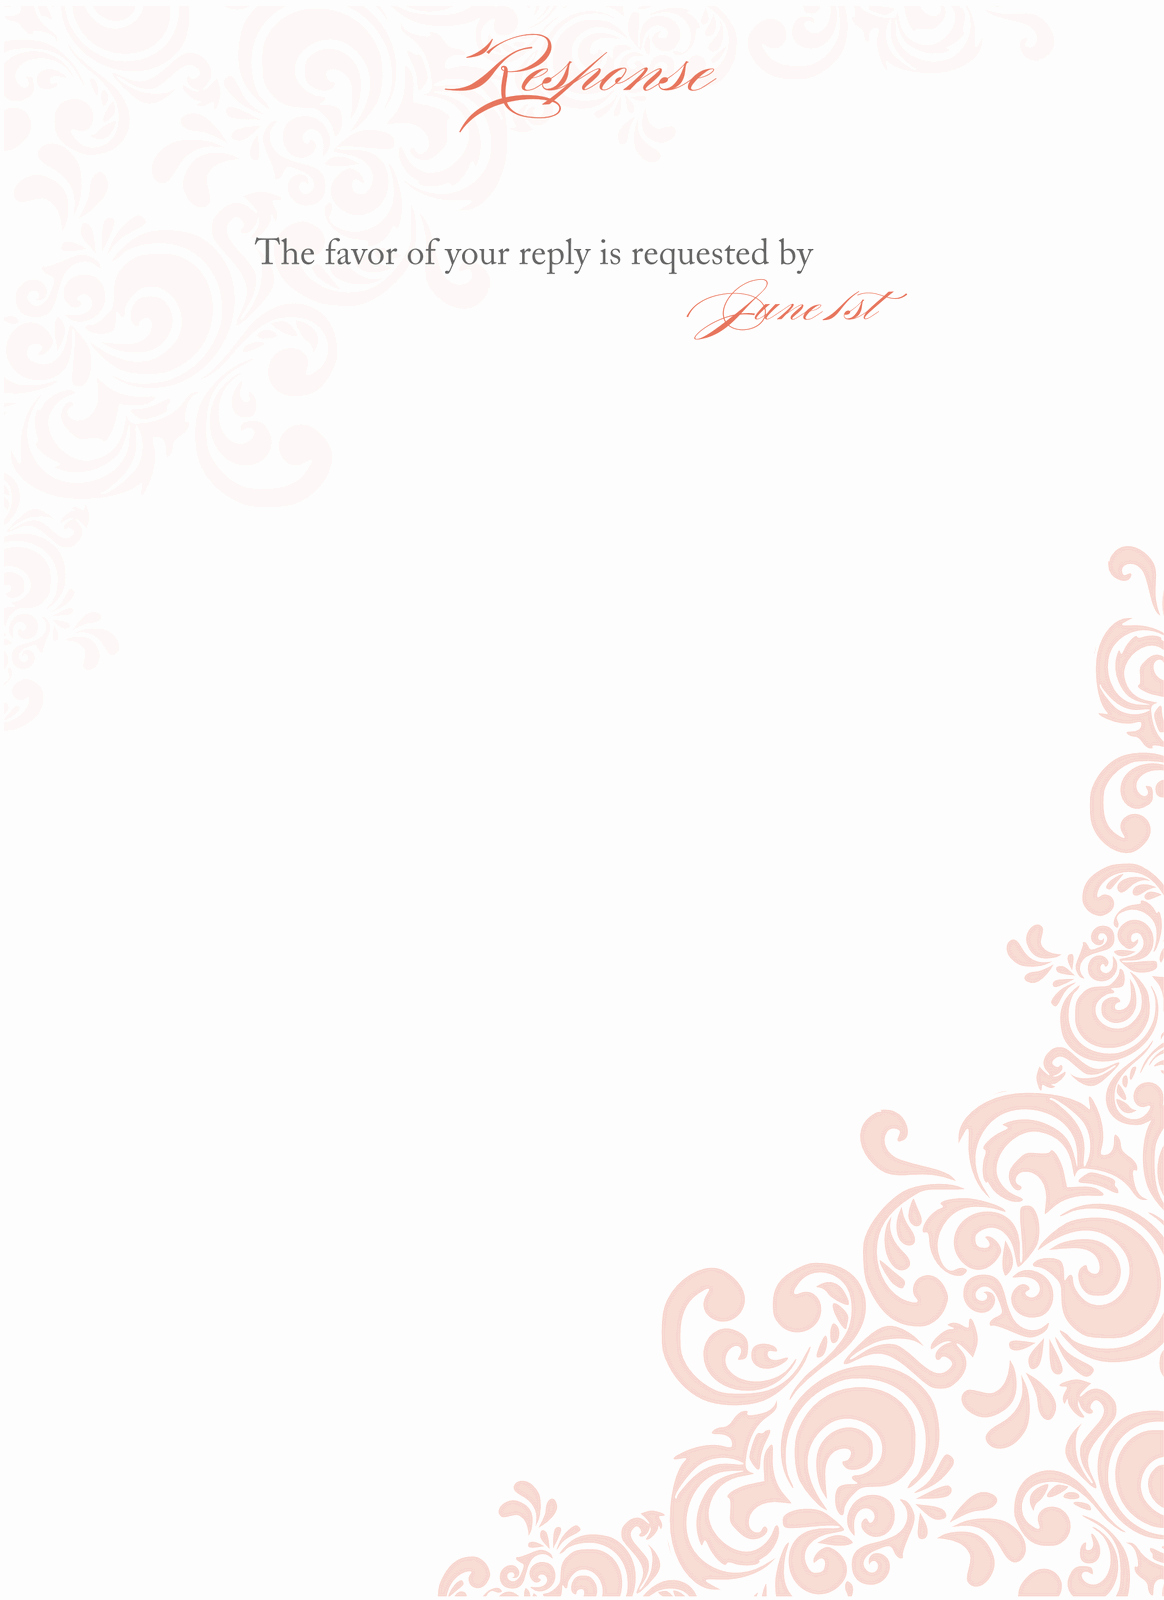 Template for Wedding Invitations Luxury Floral Blank Wedding Invitation Templates